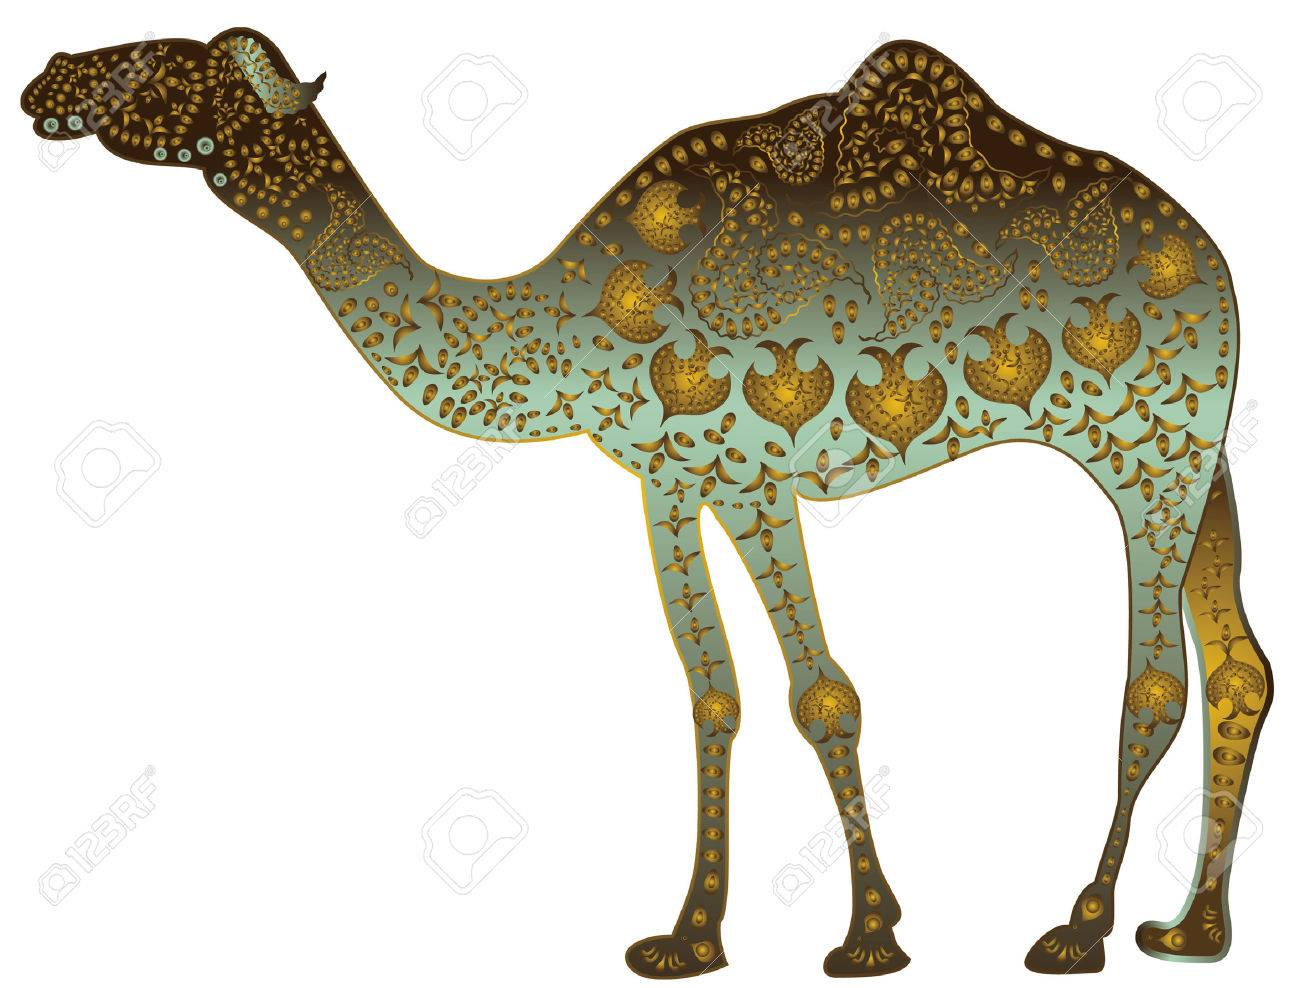 patterned camel of jewelry in ethnic style on a white background - 5731036